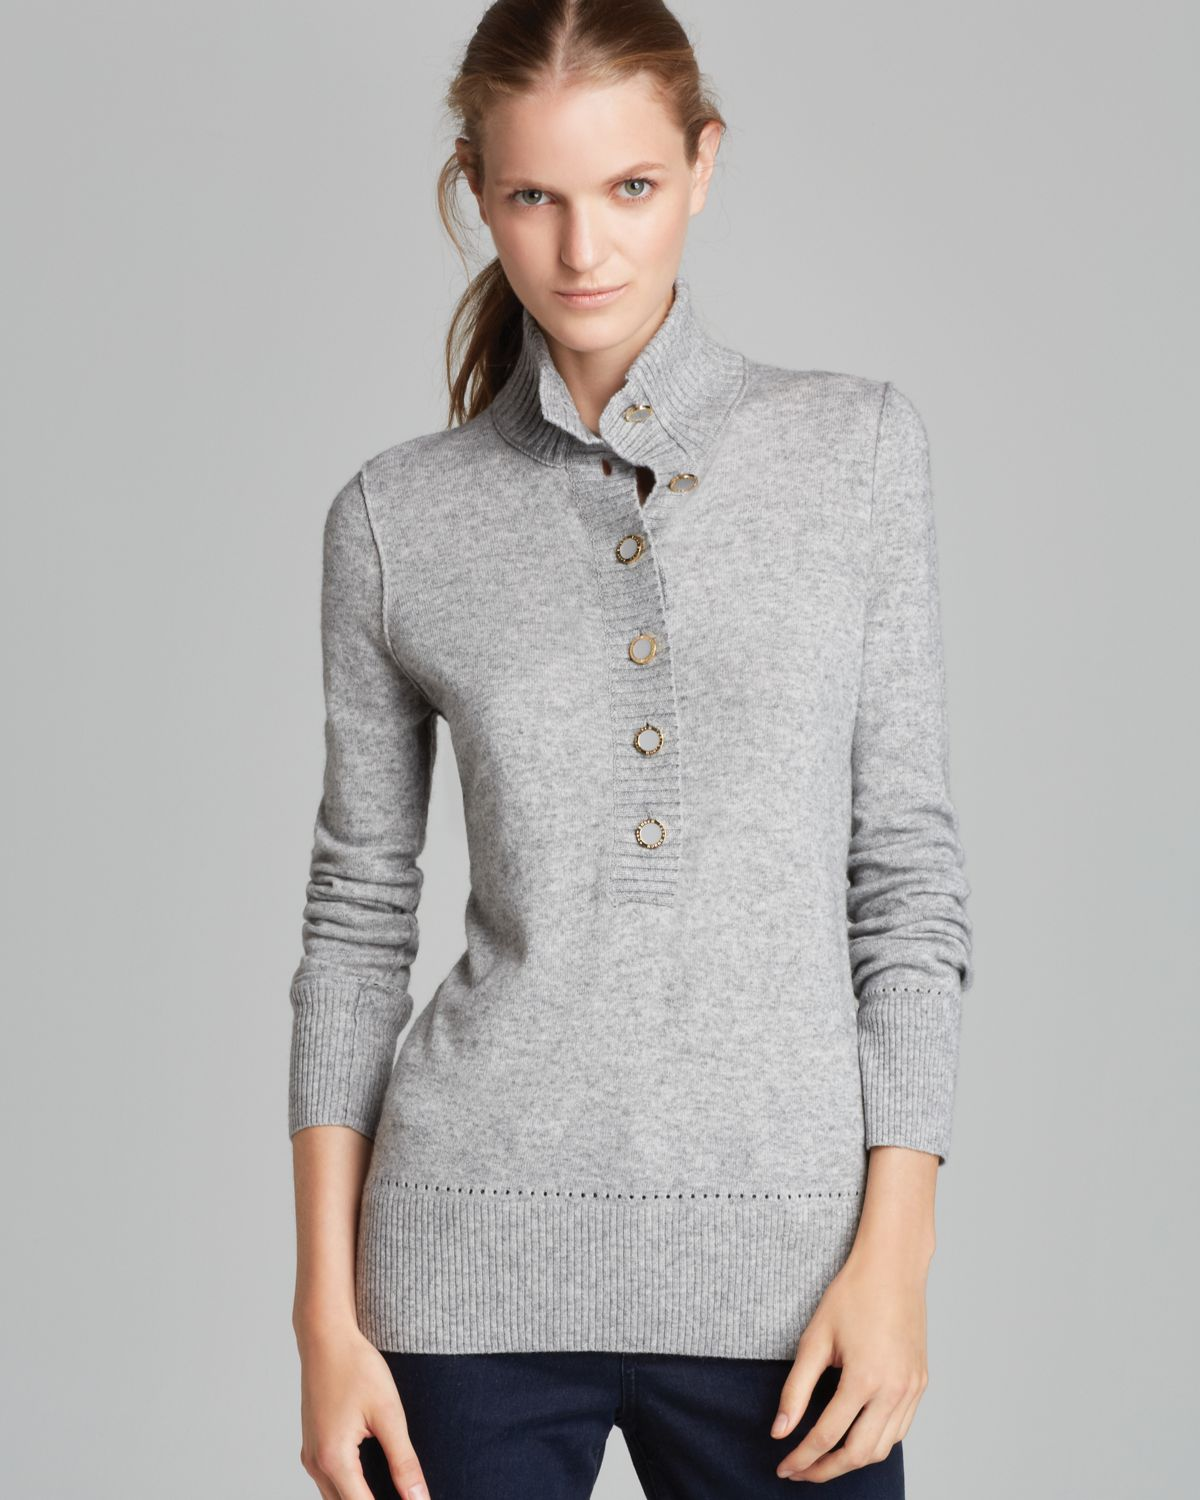 Lyst Tory Burch Giselle Sweater In Gray